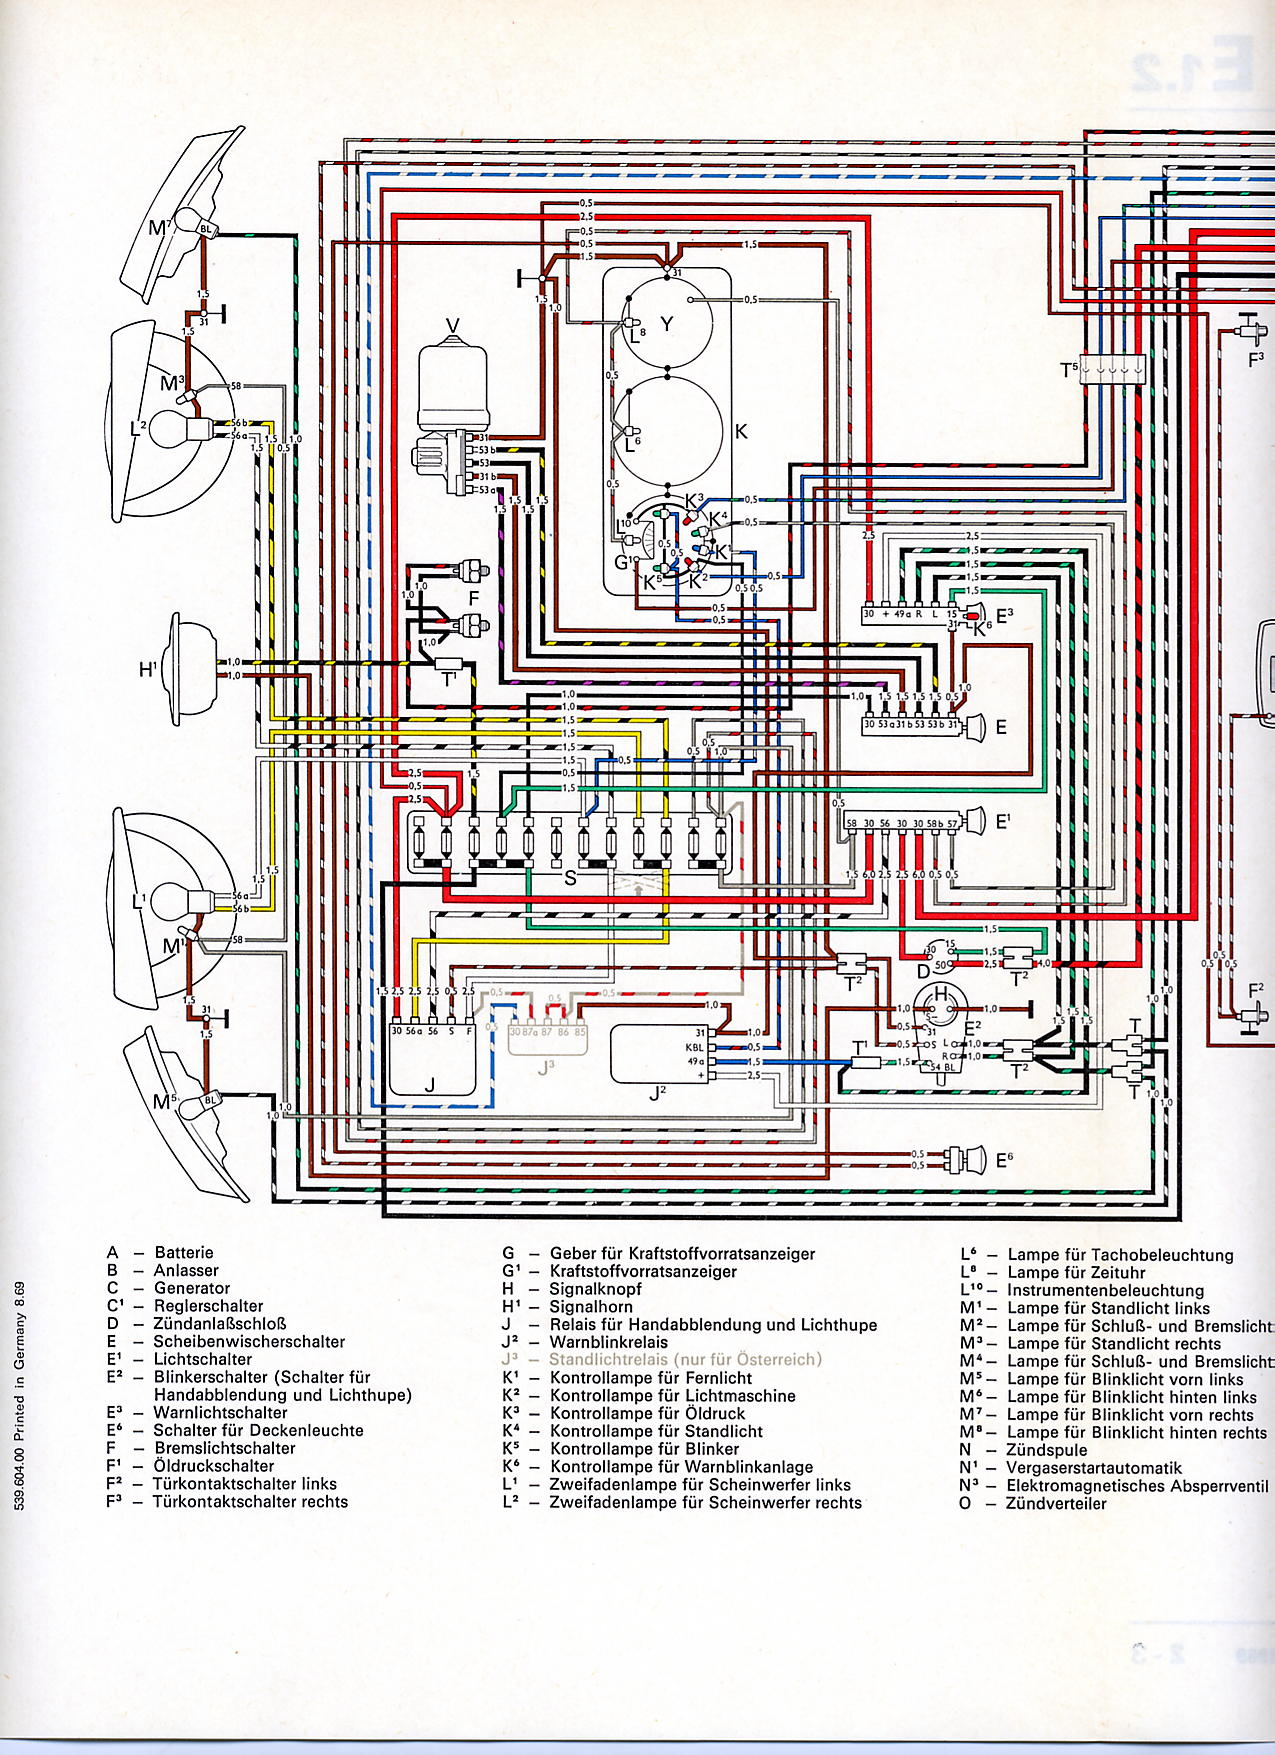 1969 Vw Fuse Box Diagram Archive Of Automotive Wiring Ford Vintagebus Com Bus And Other Diagrams Rh Bug